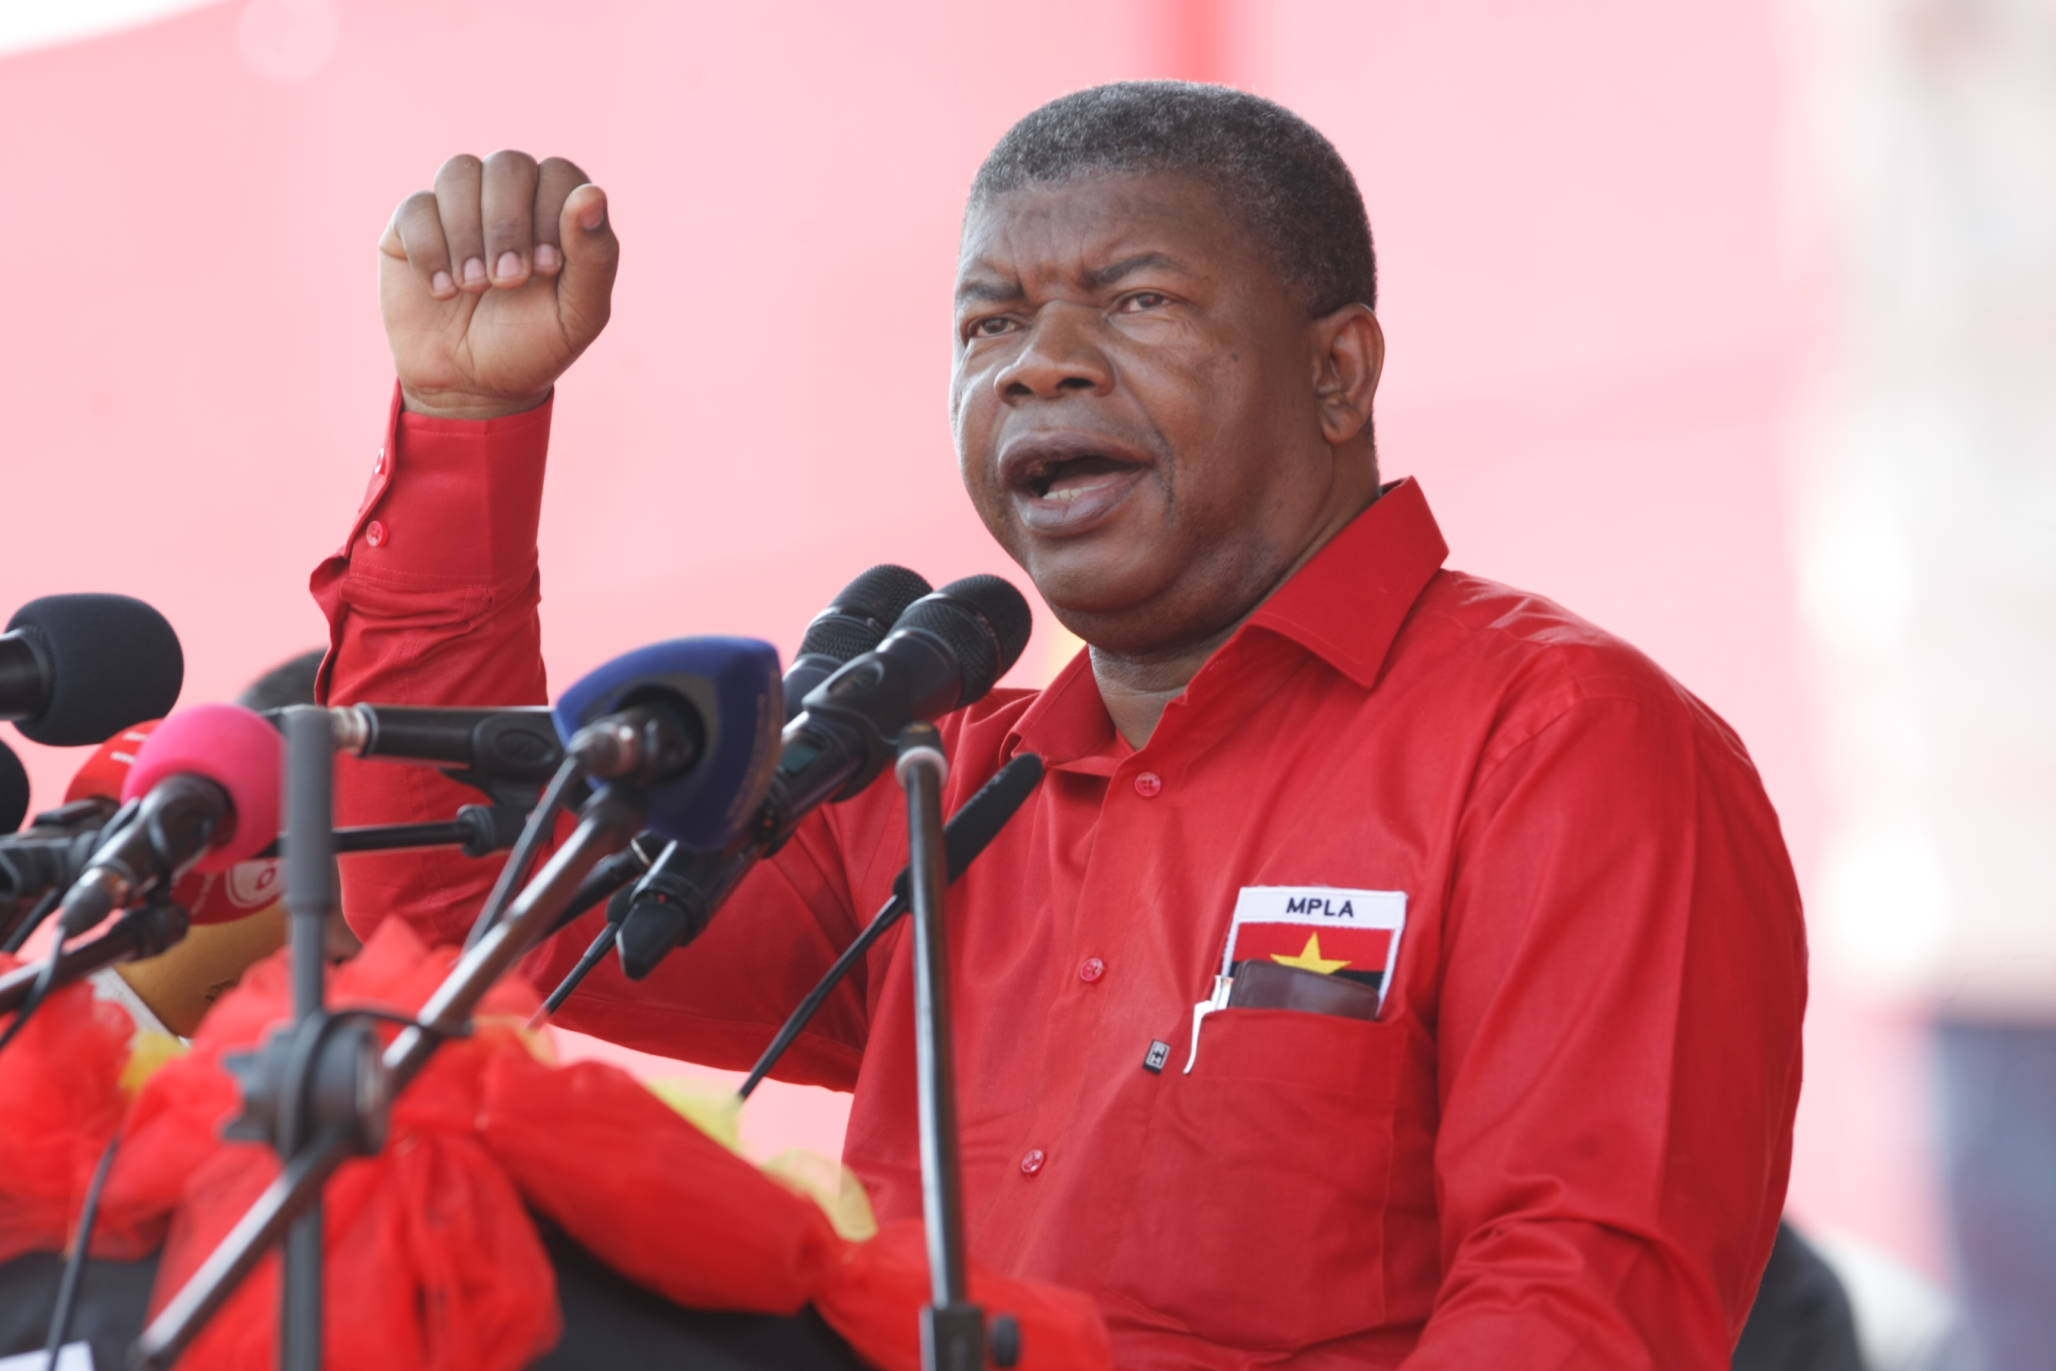 Angola elections 2017: MPLA leads in early vote count